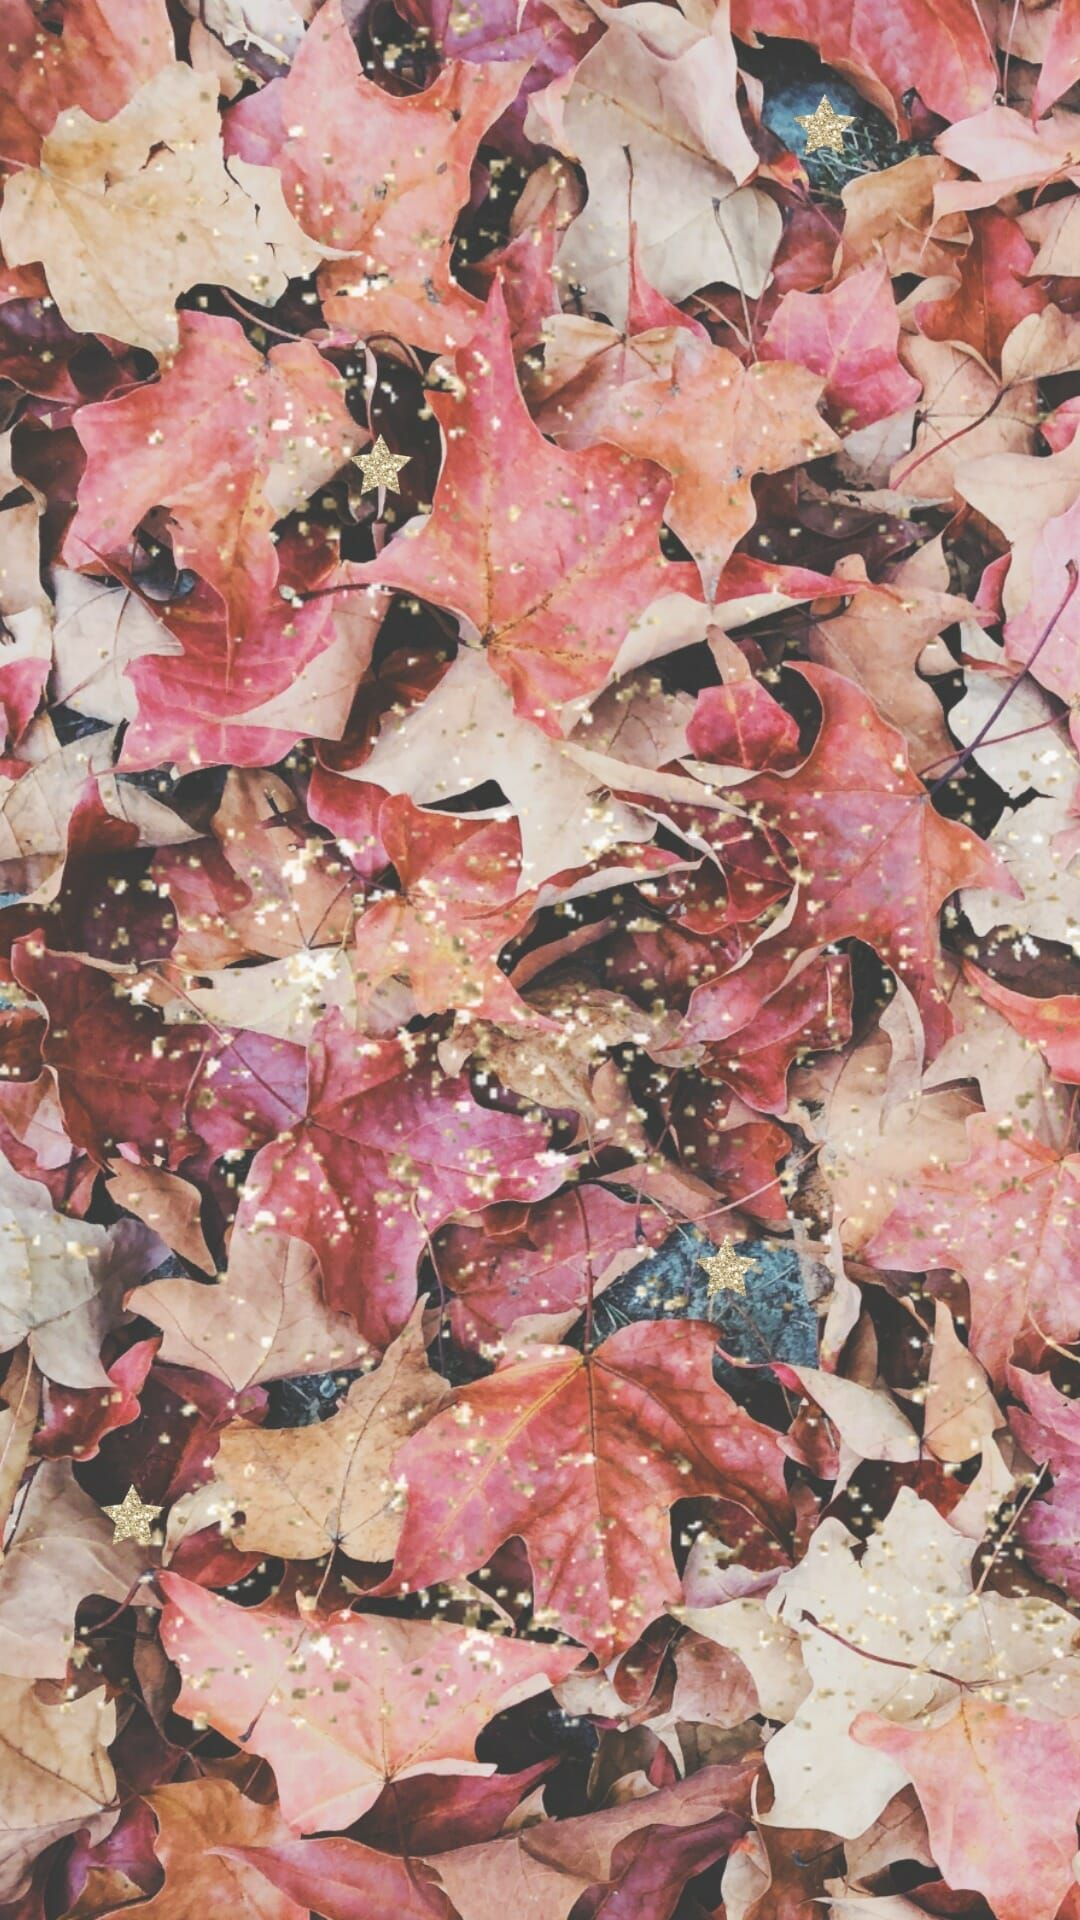 40 Free Amazing Fall Wallpaper Backgrounds For Iphone Fall Wallpaper Free Phone Wallpaper September Wallpaper